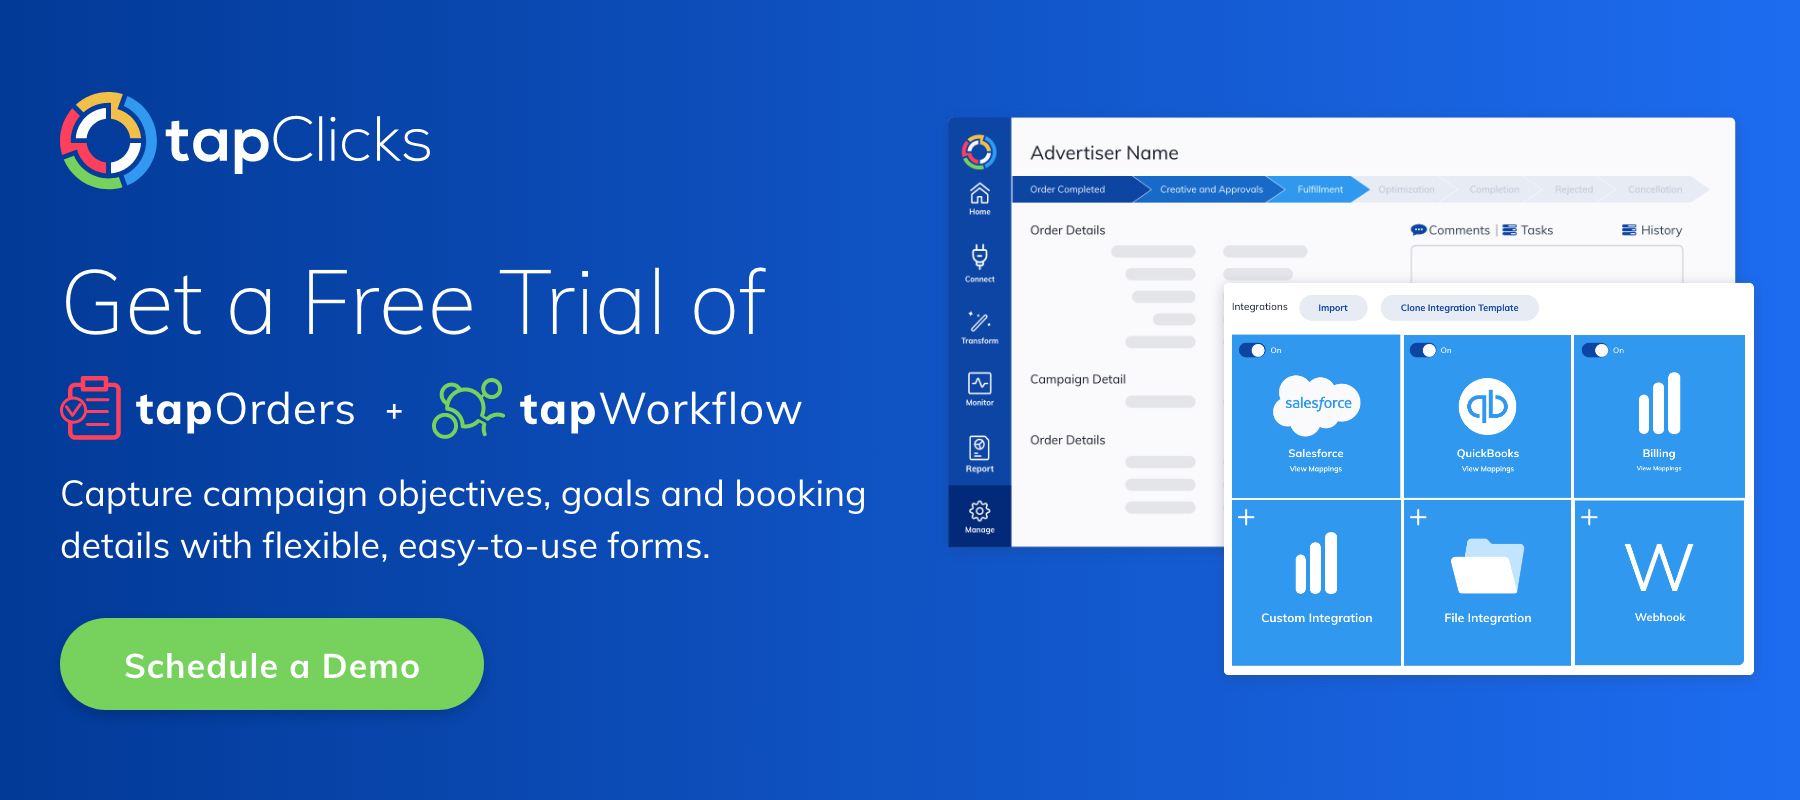 Get a Free Trial of TapOrders + TapWorkflow